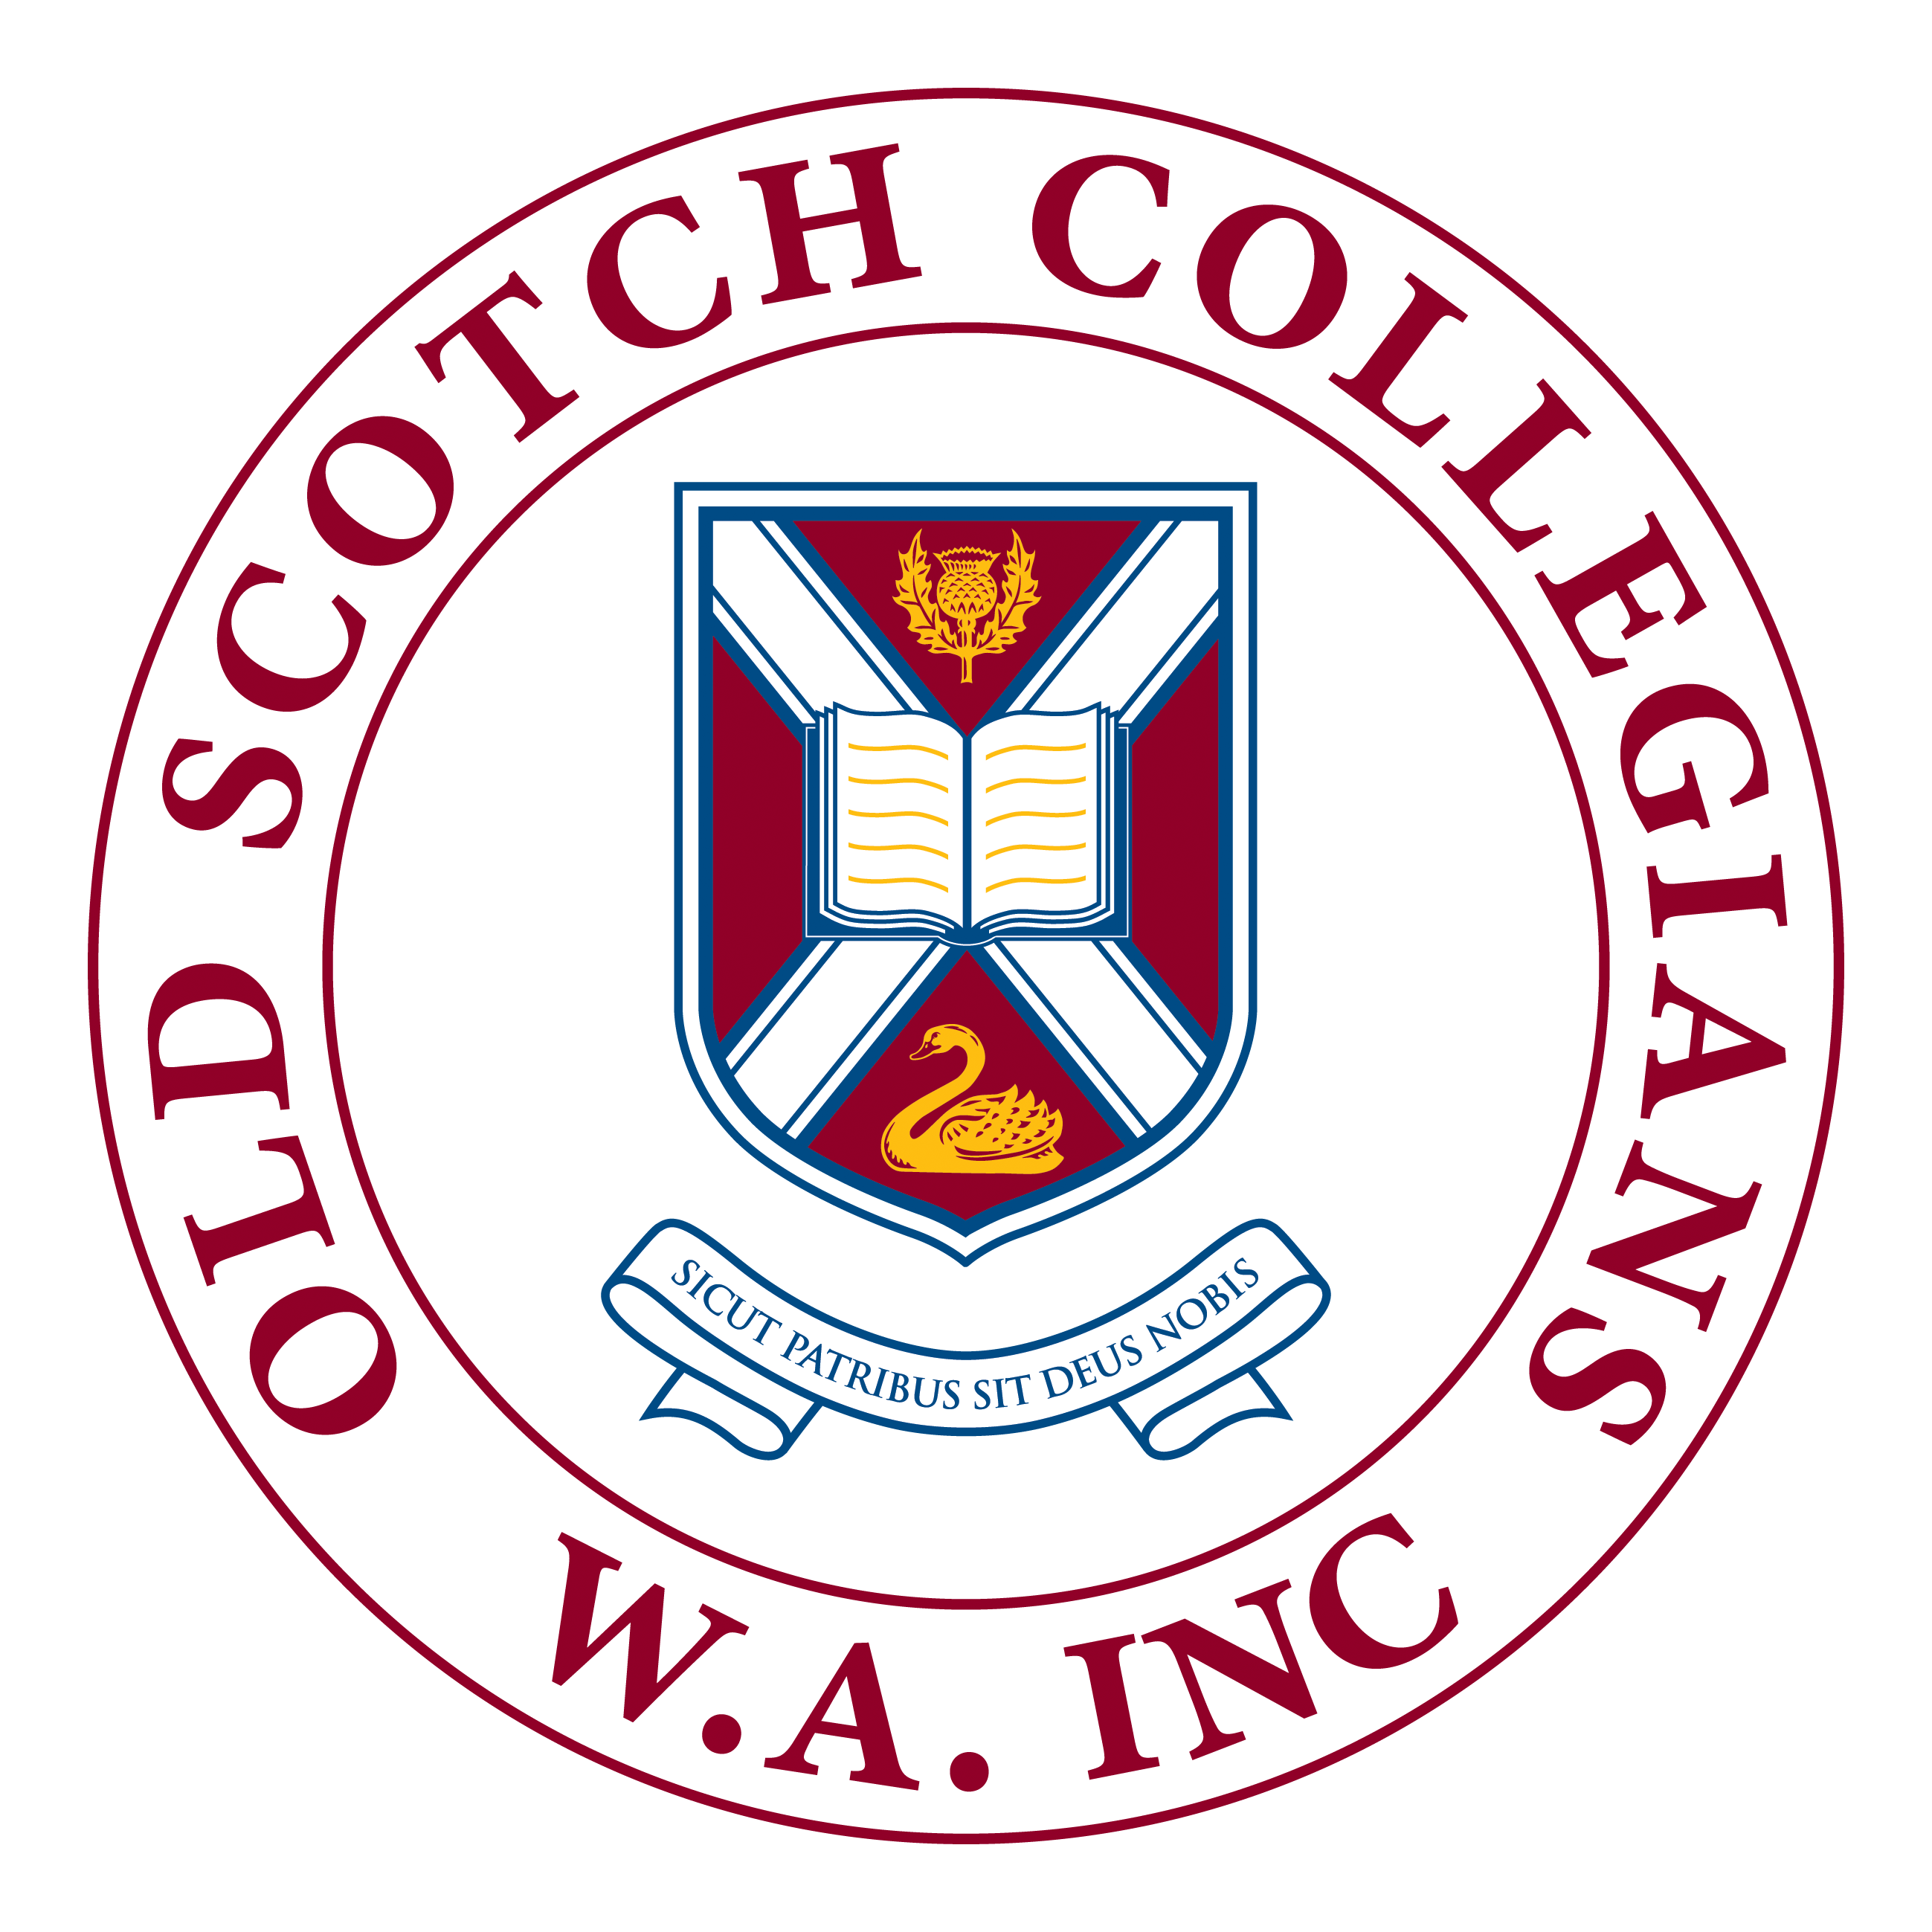 old-scotch-collegians-wa-inc-logo-rgb_20cm.png